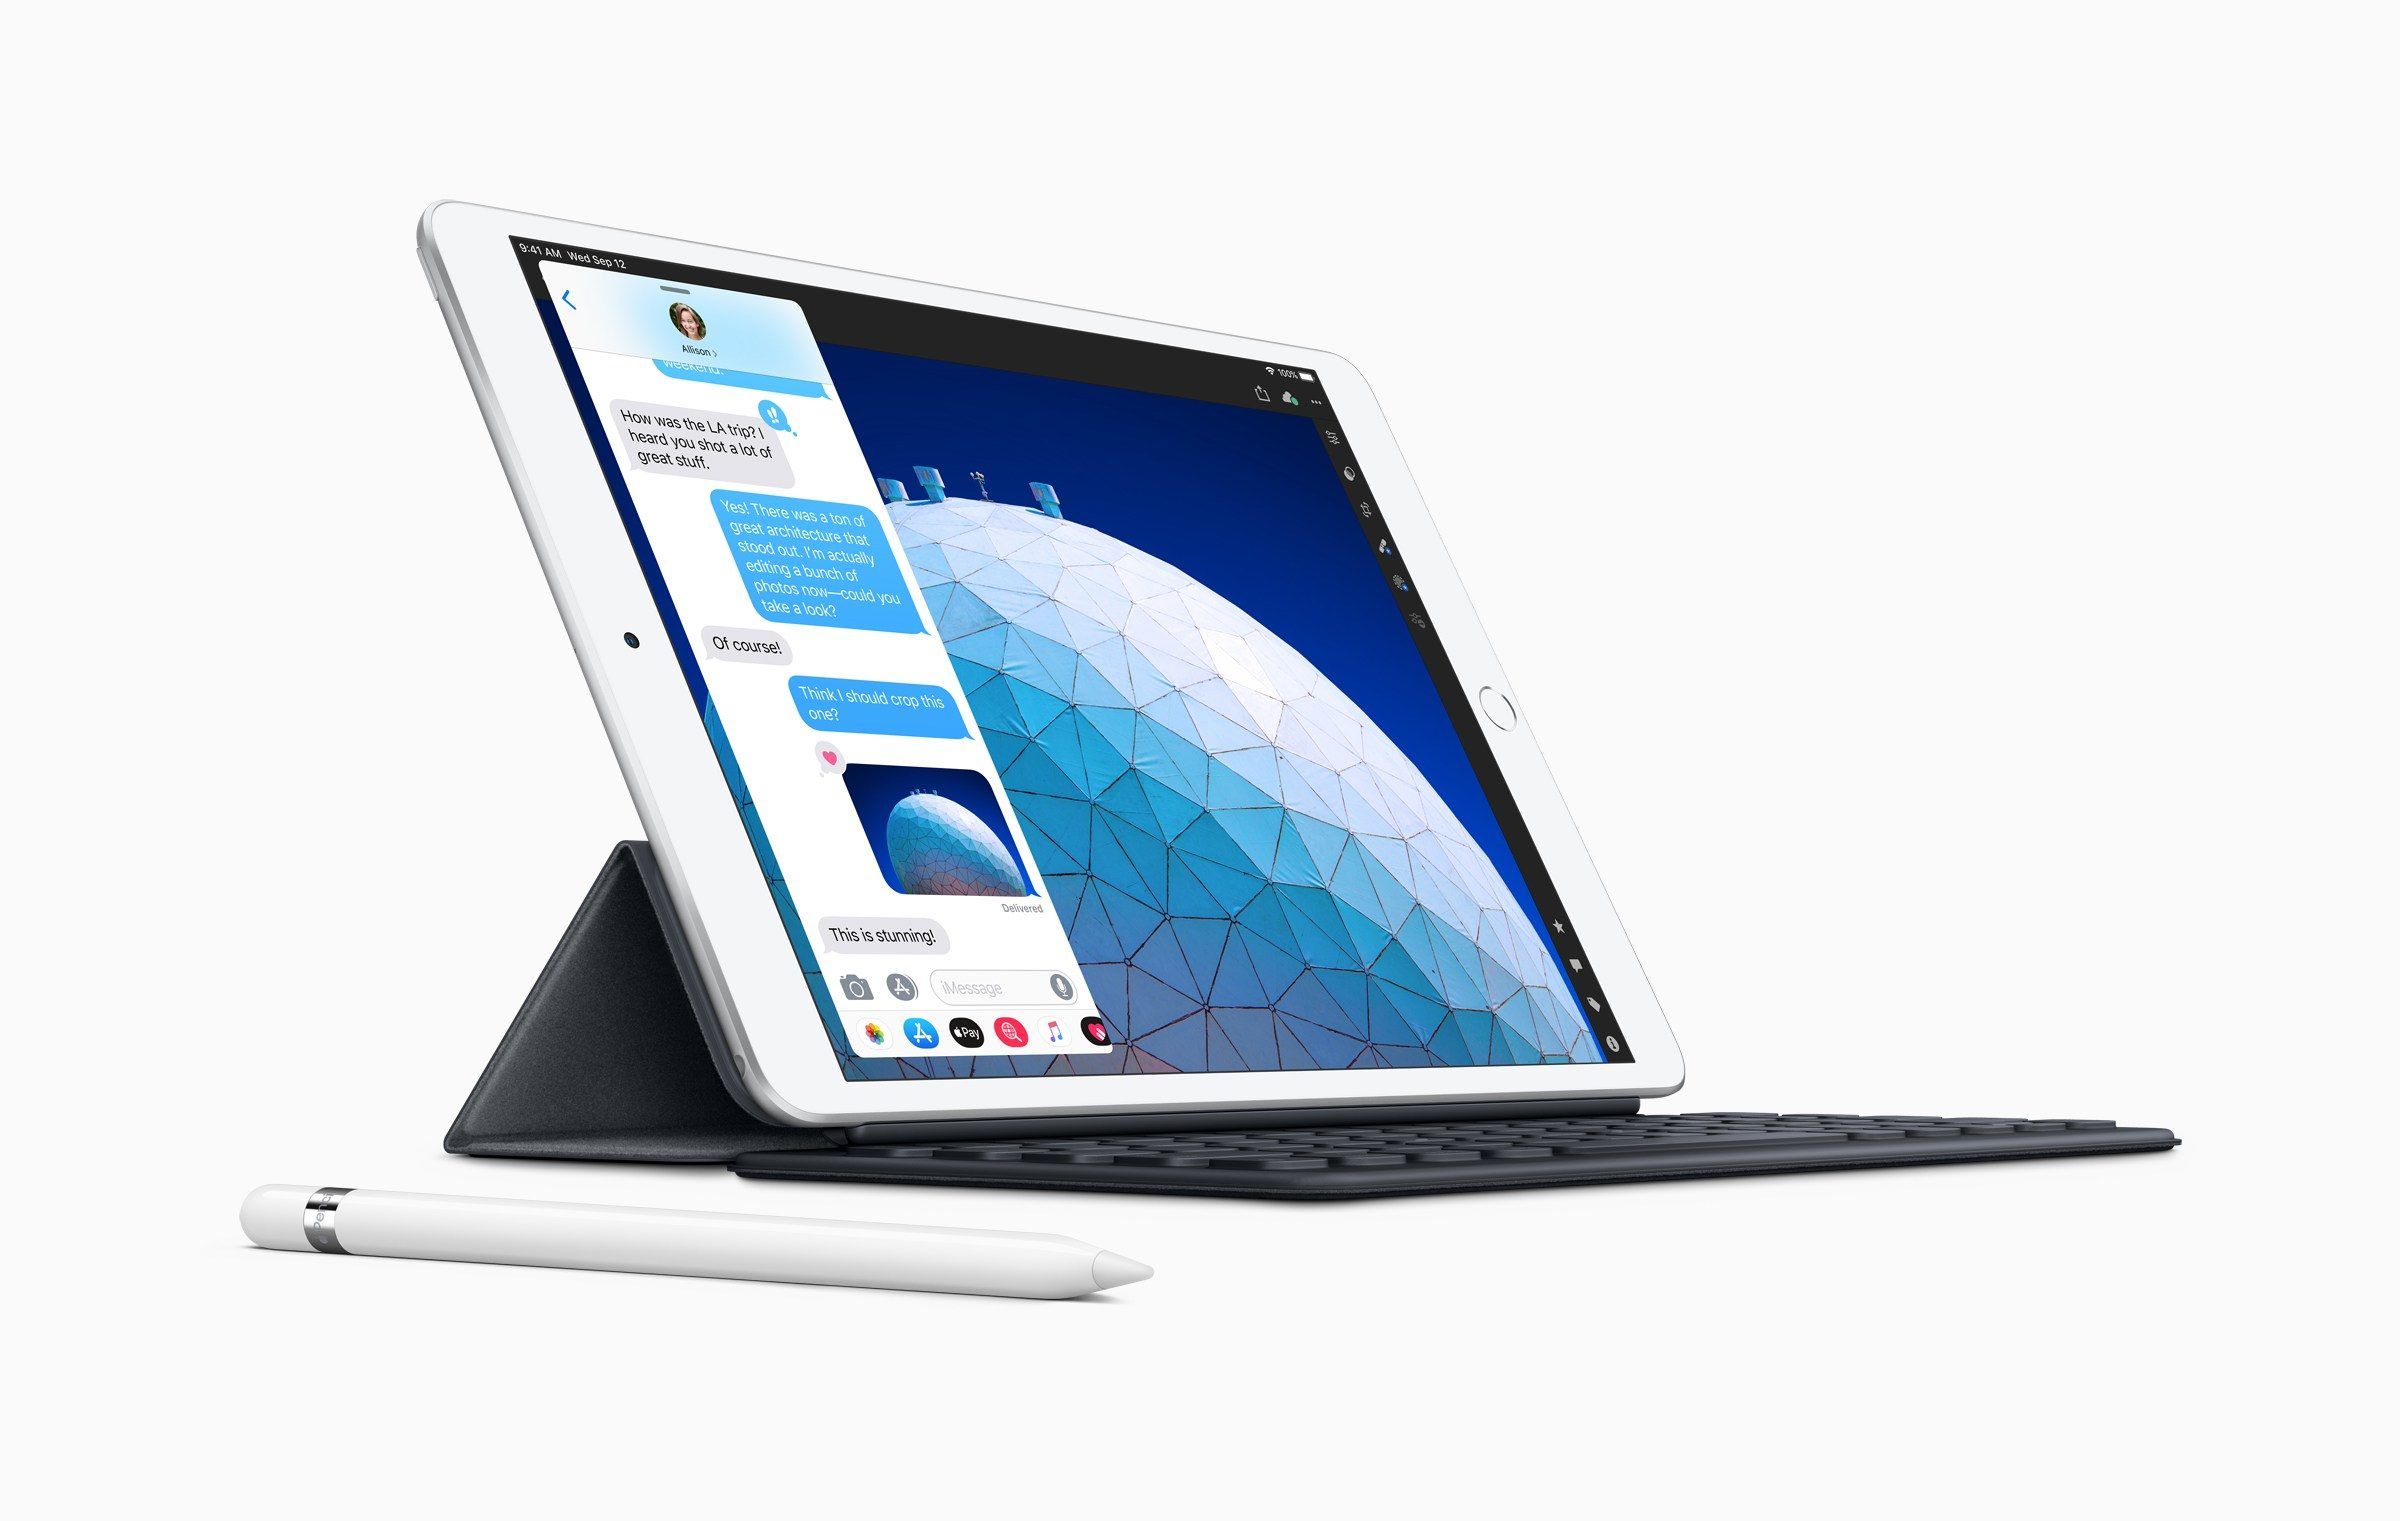 Apple potichu představil iPad Air a iPad mini s podporou Apple Pencil